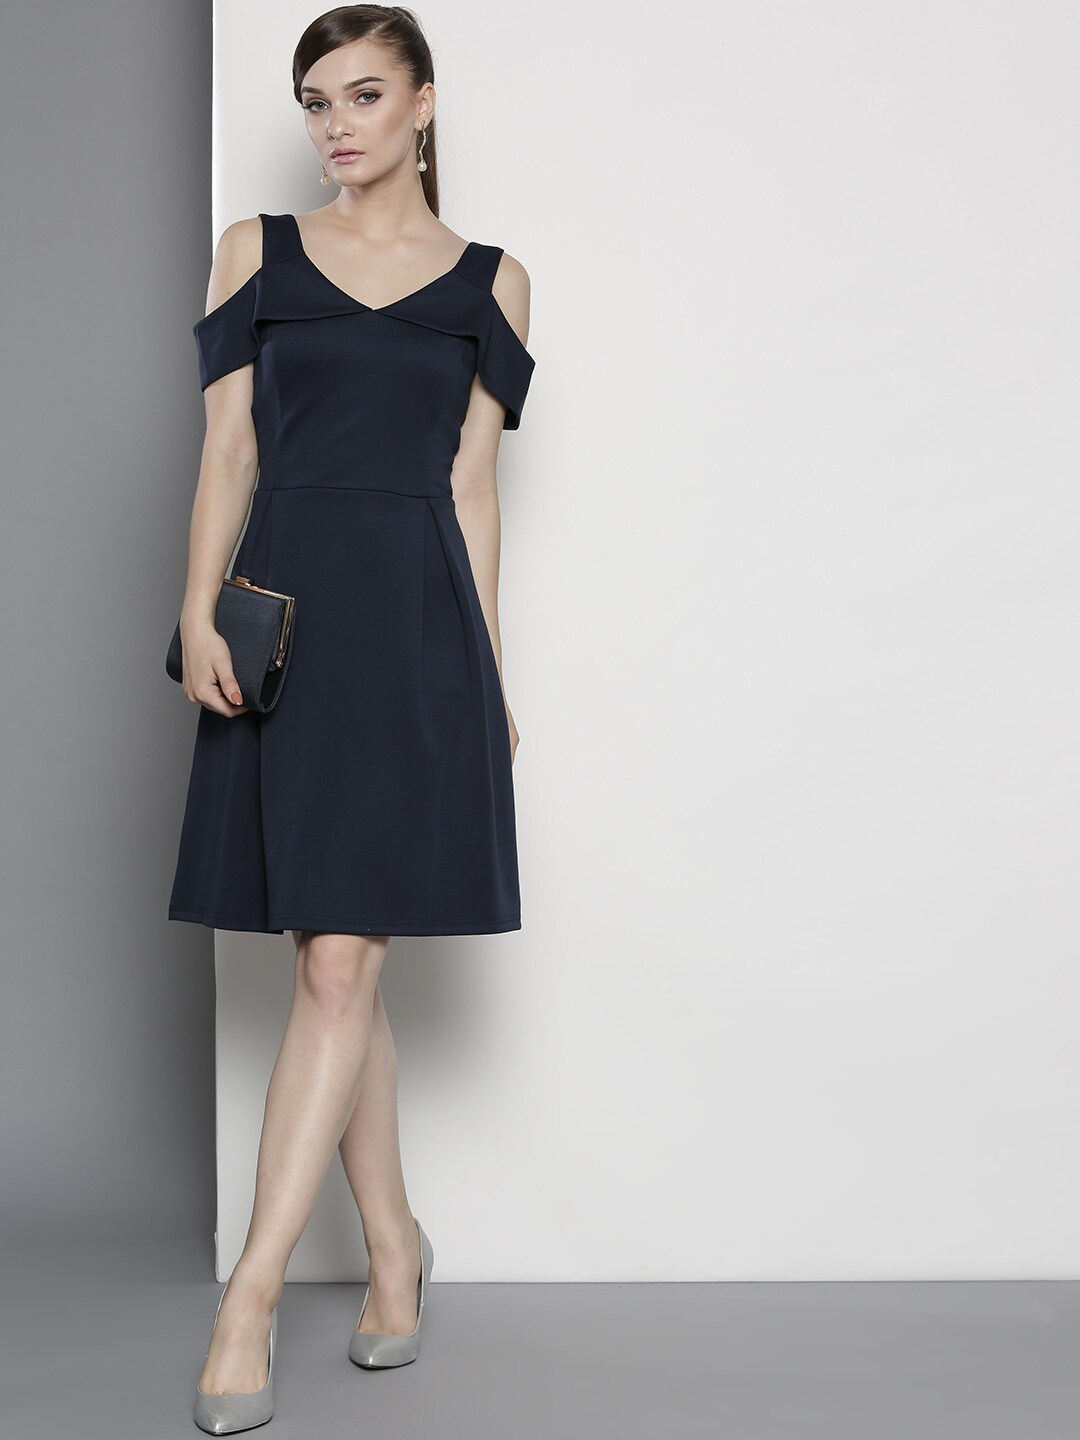 DOROTHY PERKINS Women Navy Solid Fit & Flare Dress image